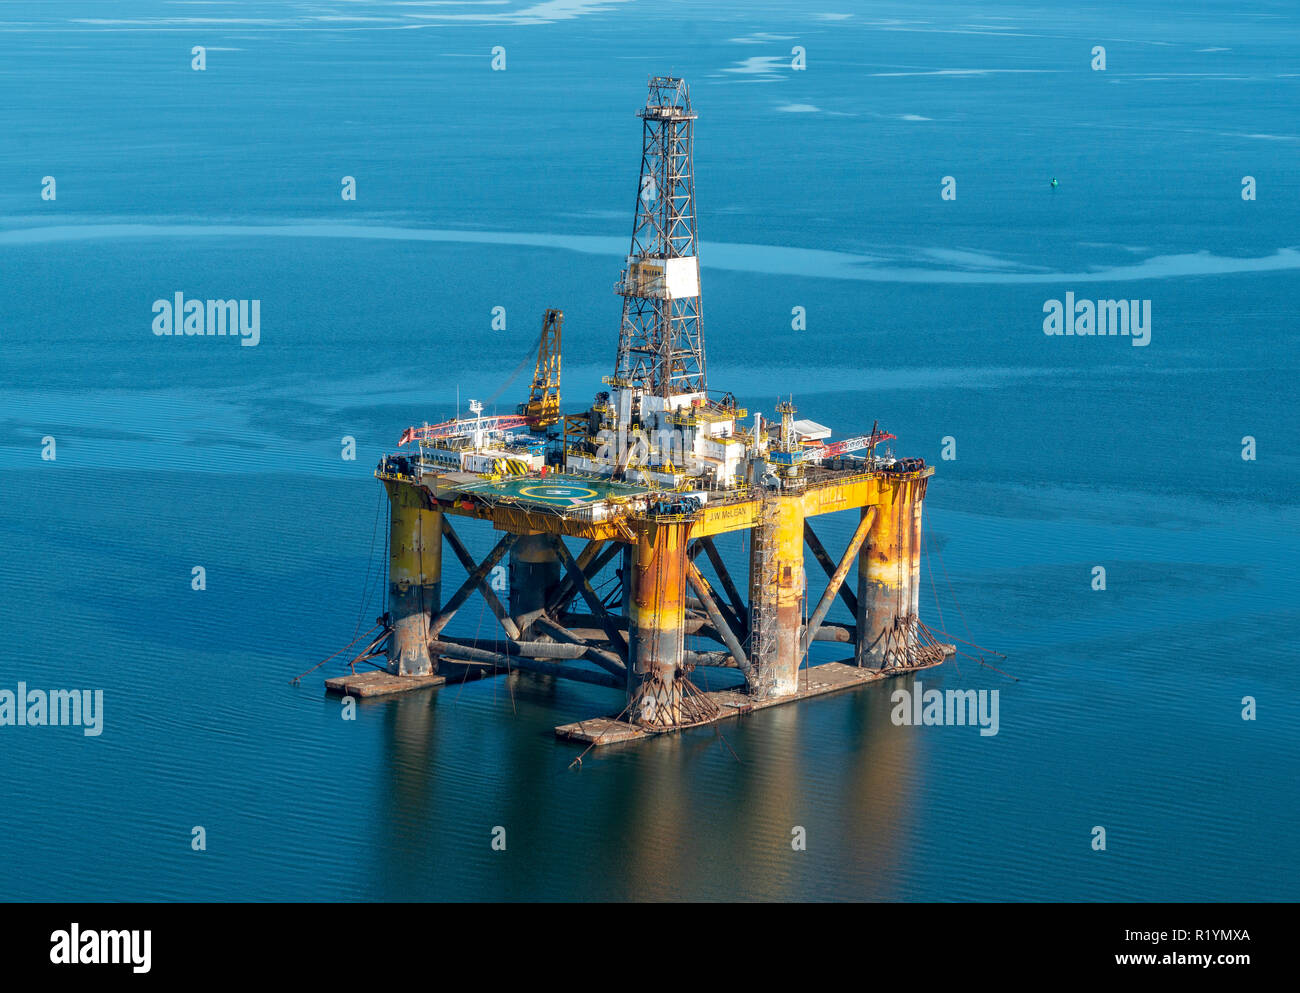 North Sea Oil Rig Stock Photos & North Sea Oil Rig Stock Images - Alamy